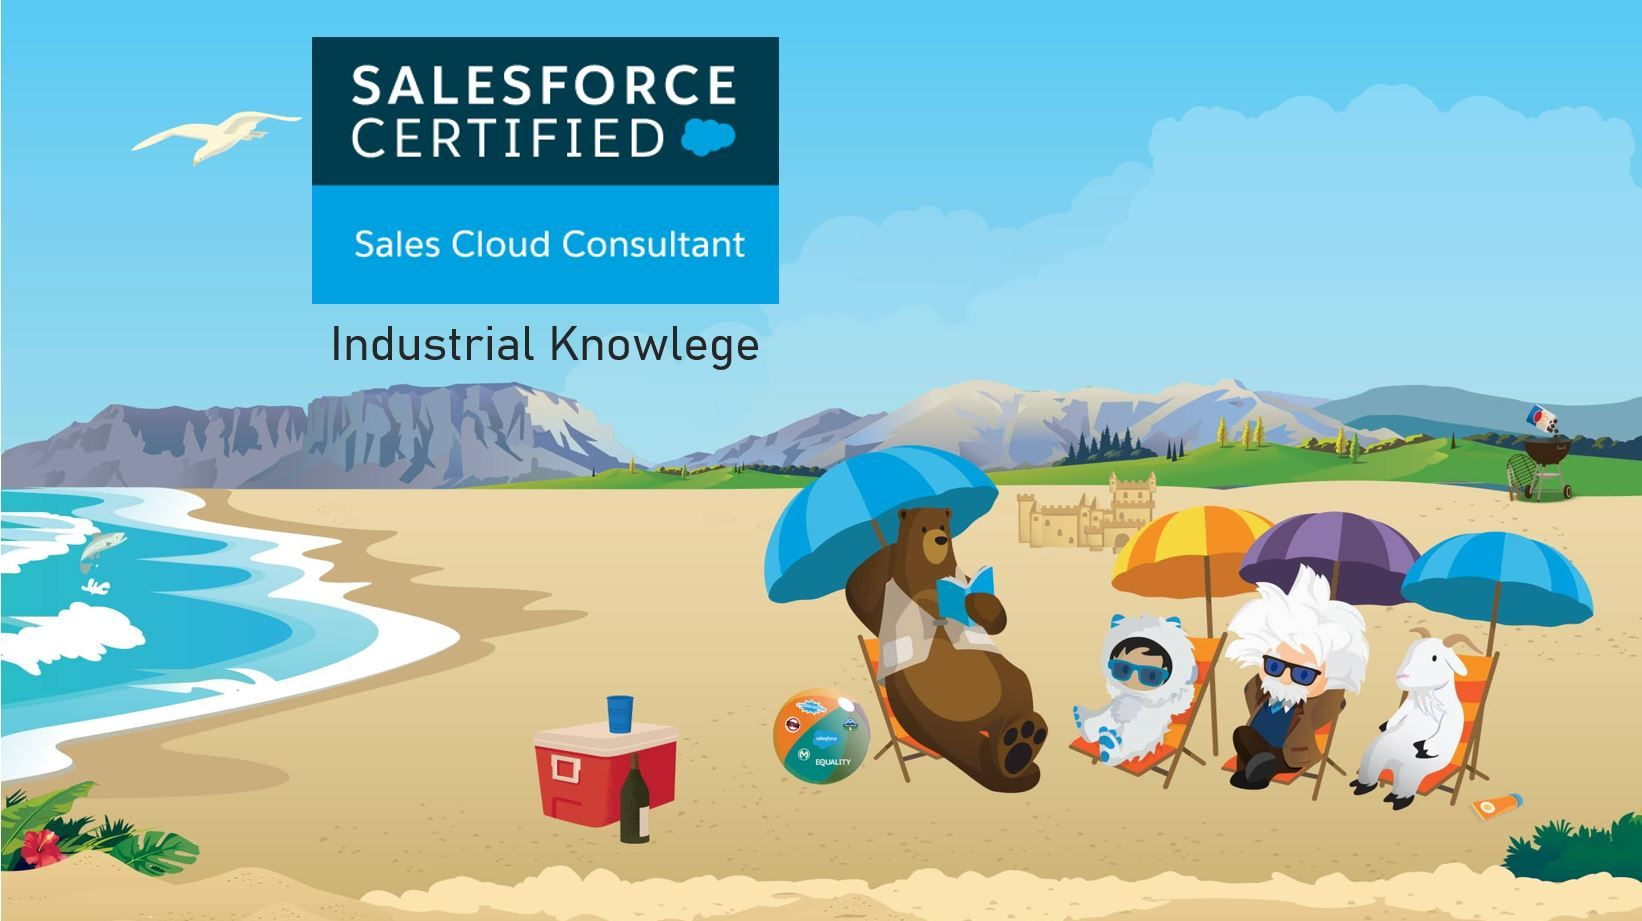 Salesforce Sales Cloud Consultant Exam Preparation: Industry Knowledge